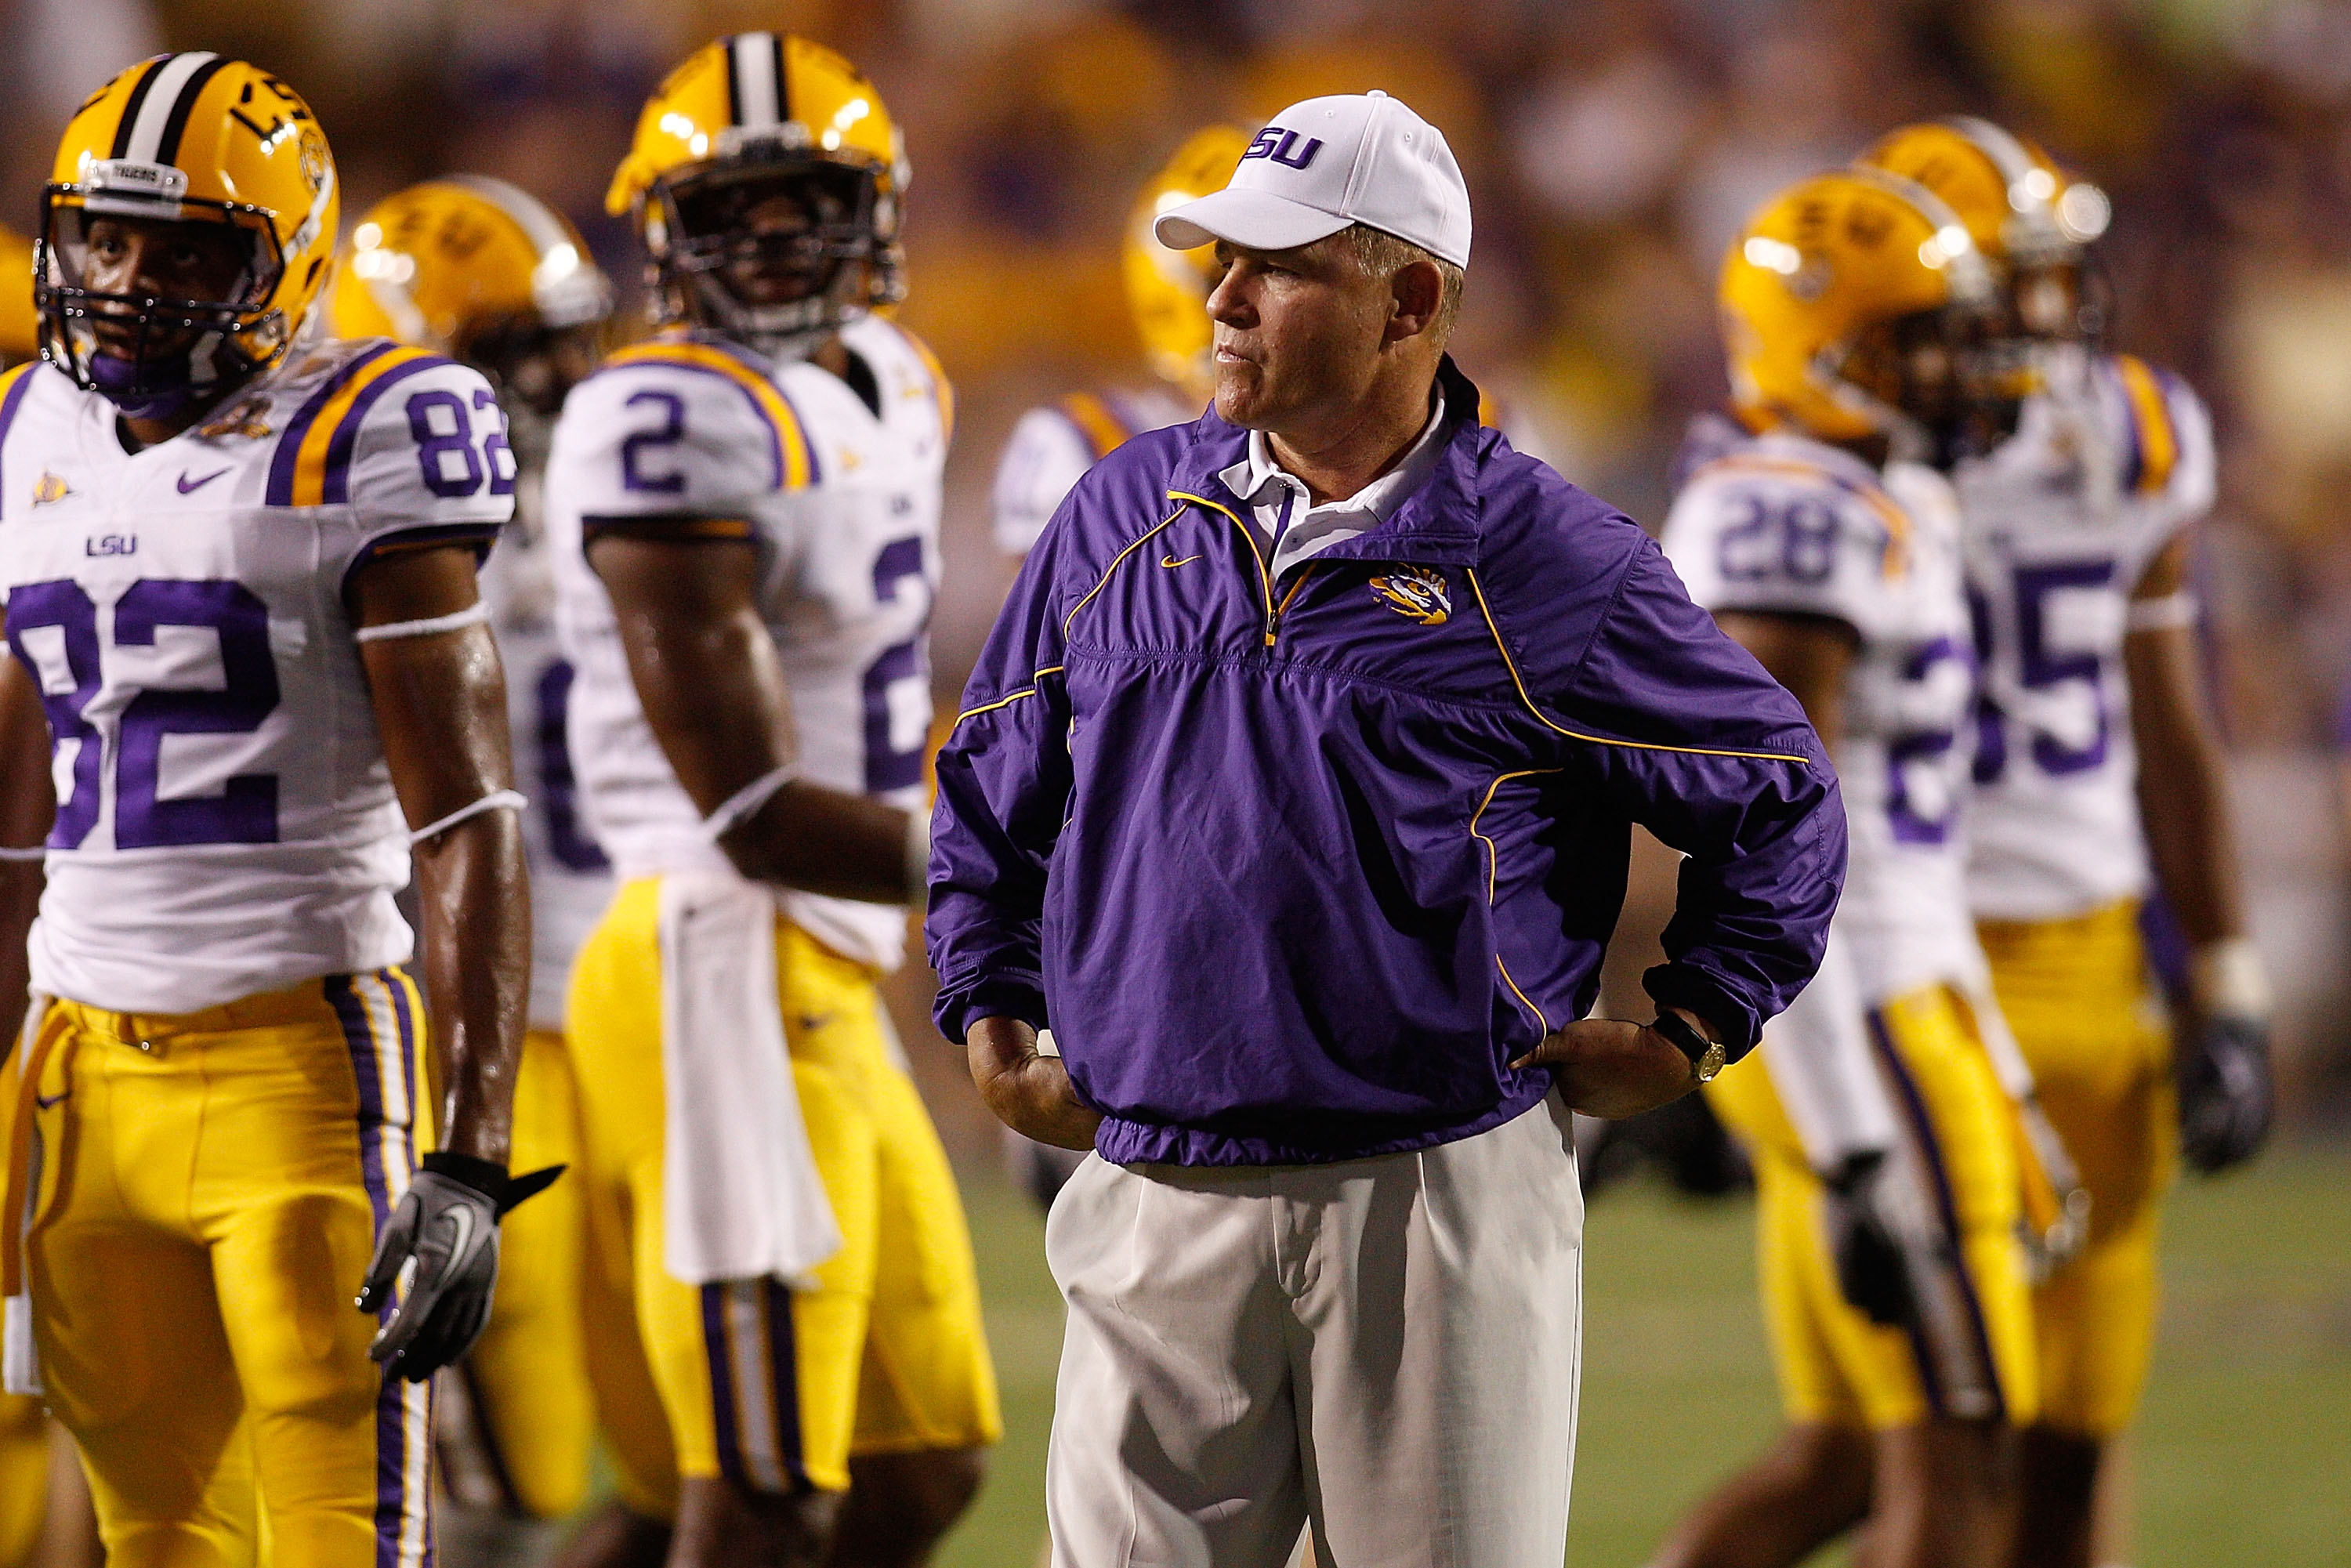 BATON ROUGE, LA - SEPTEMBER 25:  Head coach Les Miles of the Louisiana State Univeristy Tigers during pregame before playing the West Virginia Mountaineers at Tiger Stadium on September 25, 2010 in Baton Rouge, Louisiana.  (Photo by Chris Graythen/Getty I